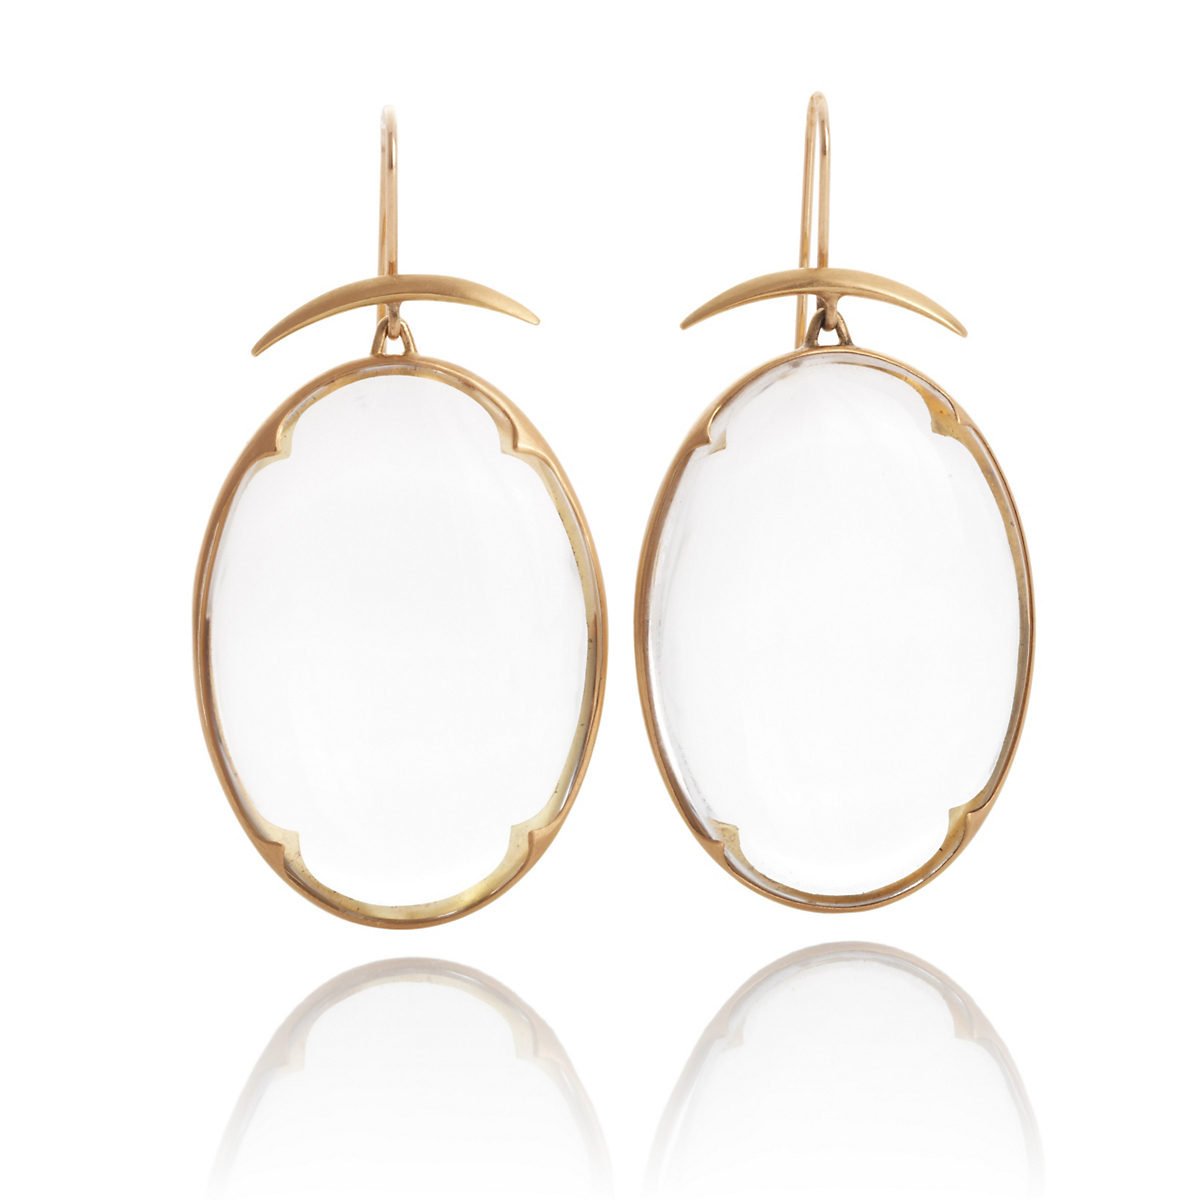 Gabriella Kiss Large Clear Quartz Lens Earrings